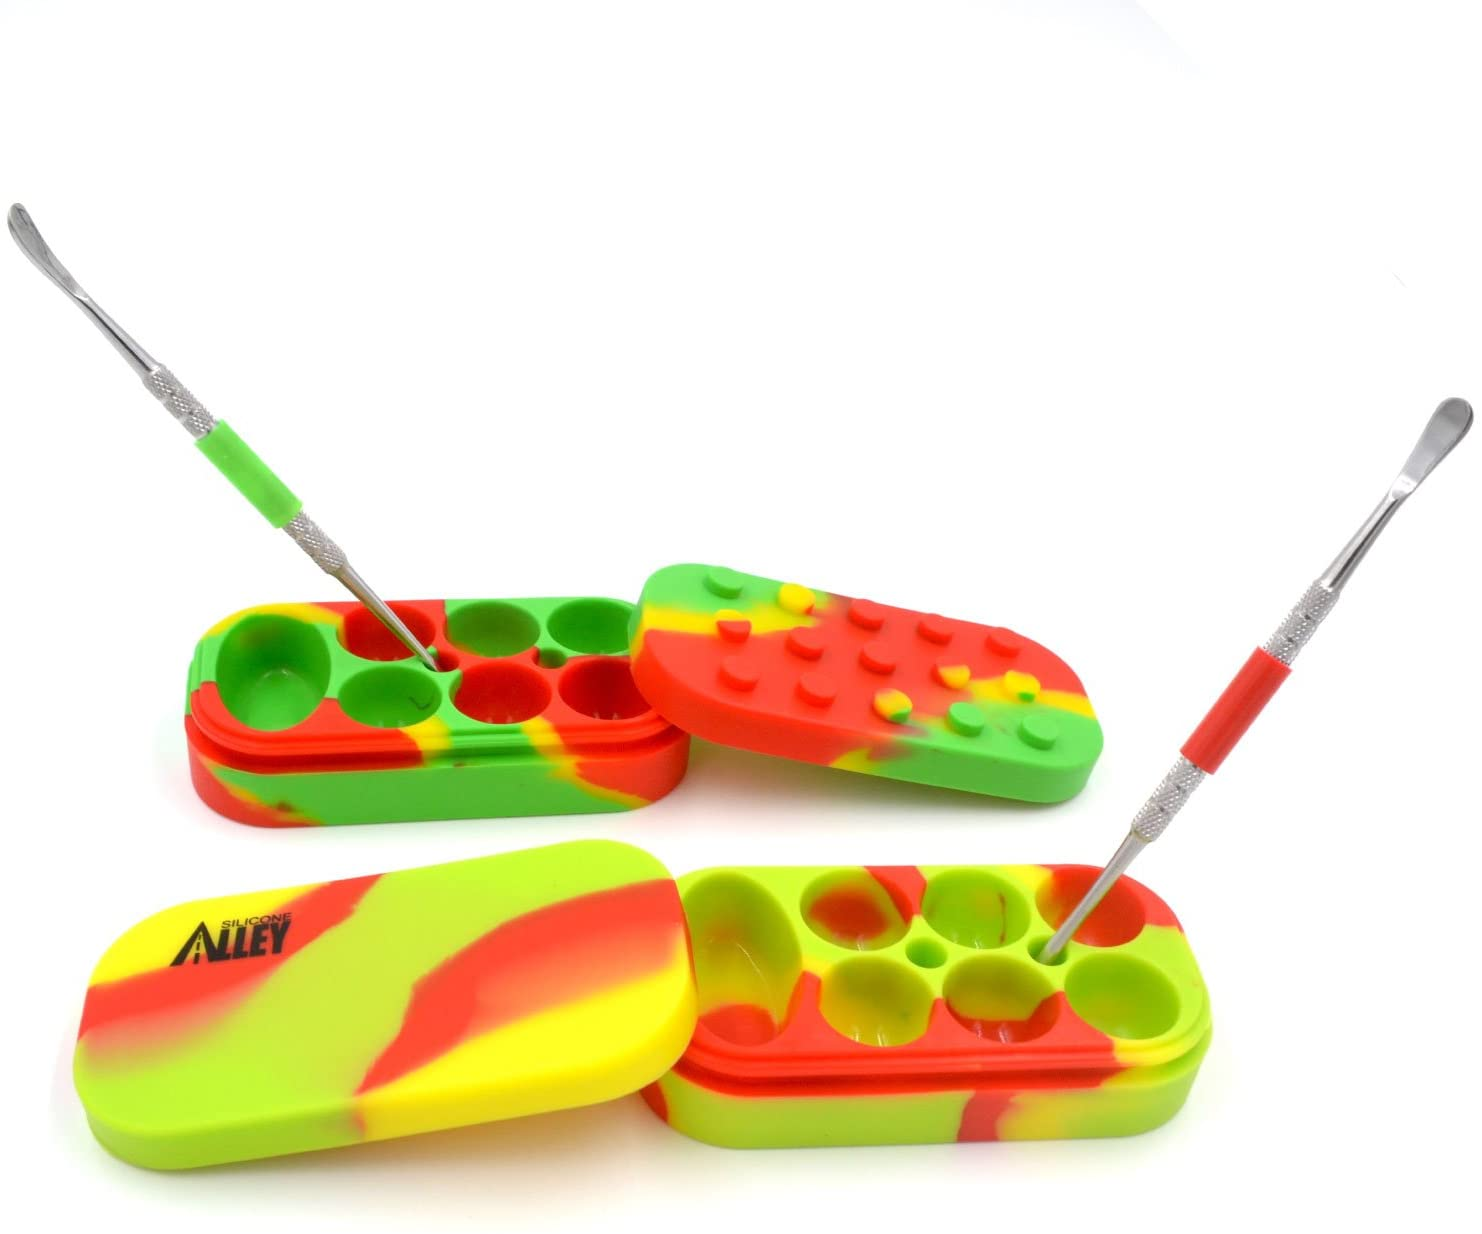 SILICONE ALLEY, 2 Carving Tool + 2 Tie Dye-Colored Multi-Compartment Wax Container